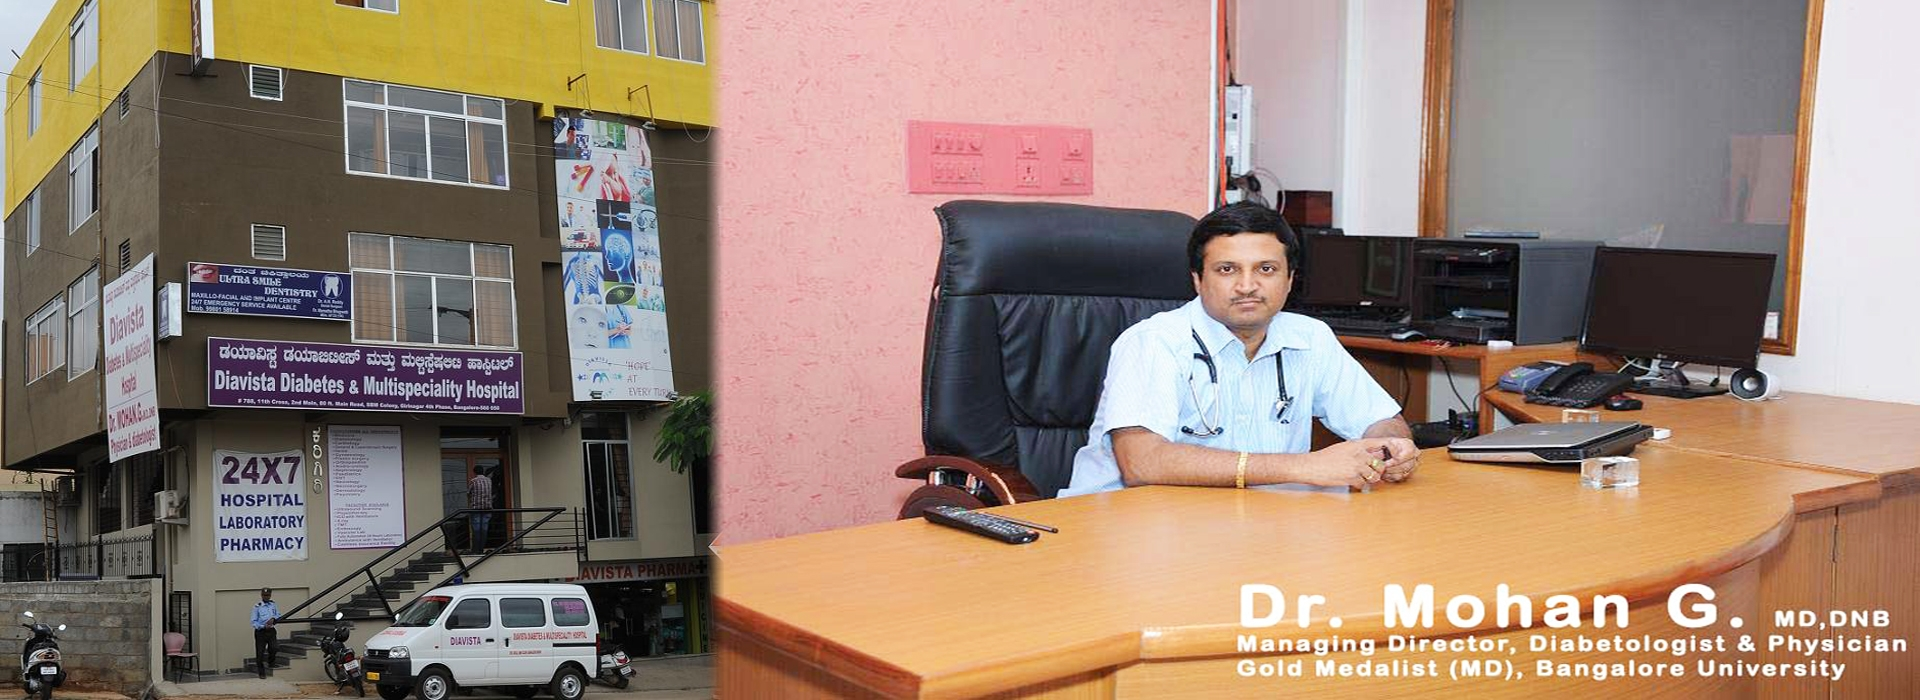 Diavista Diabetes & Multispeciality Hospital